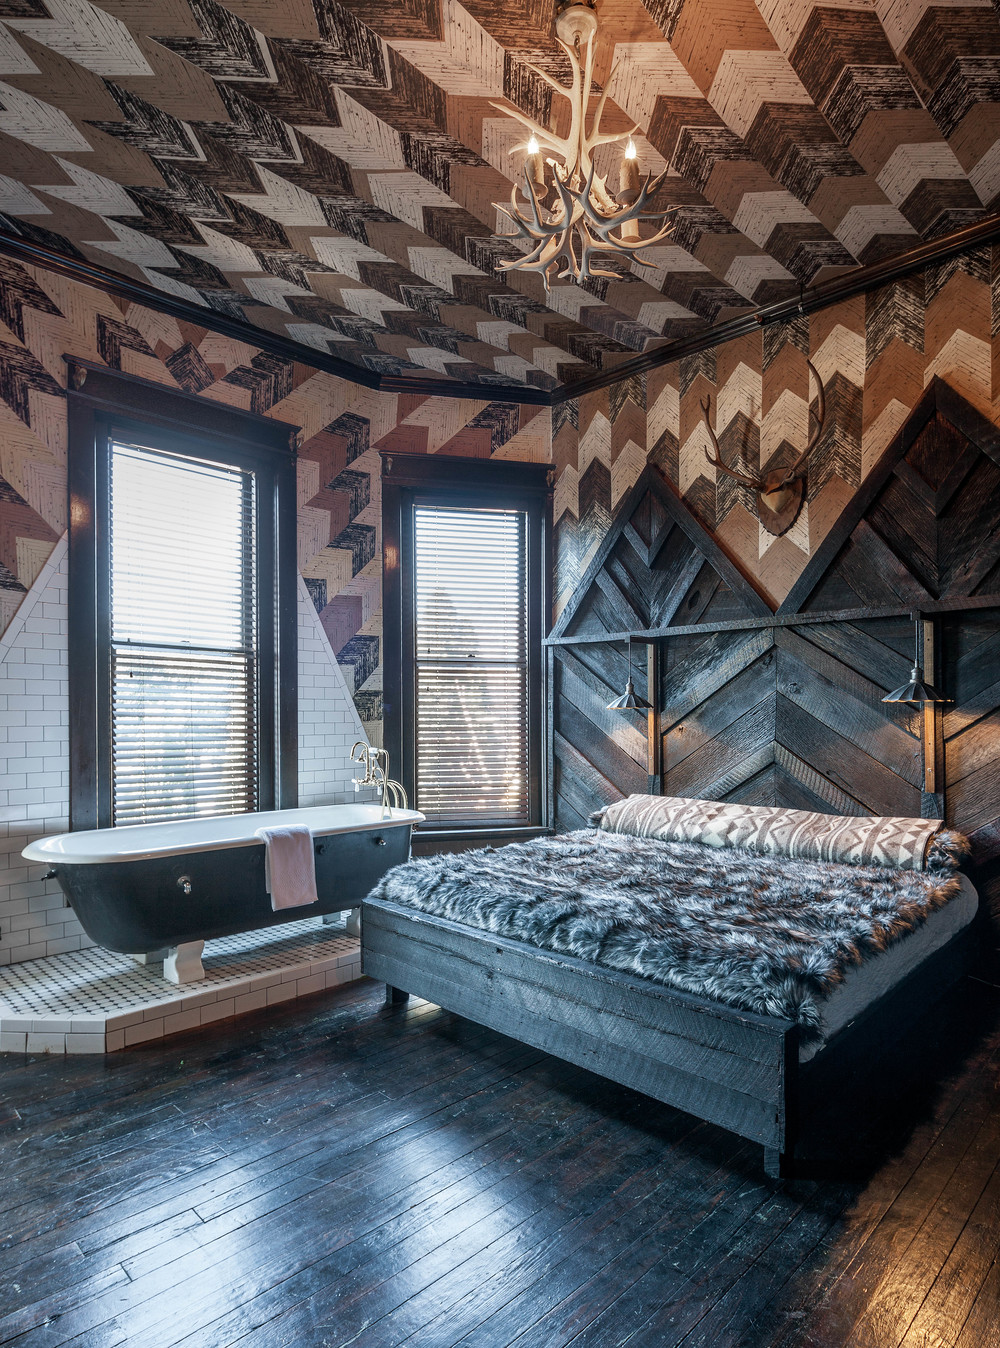 Reclaimed charred Heart Pine bed in 'The Midnight Rider' Bedroom.